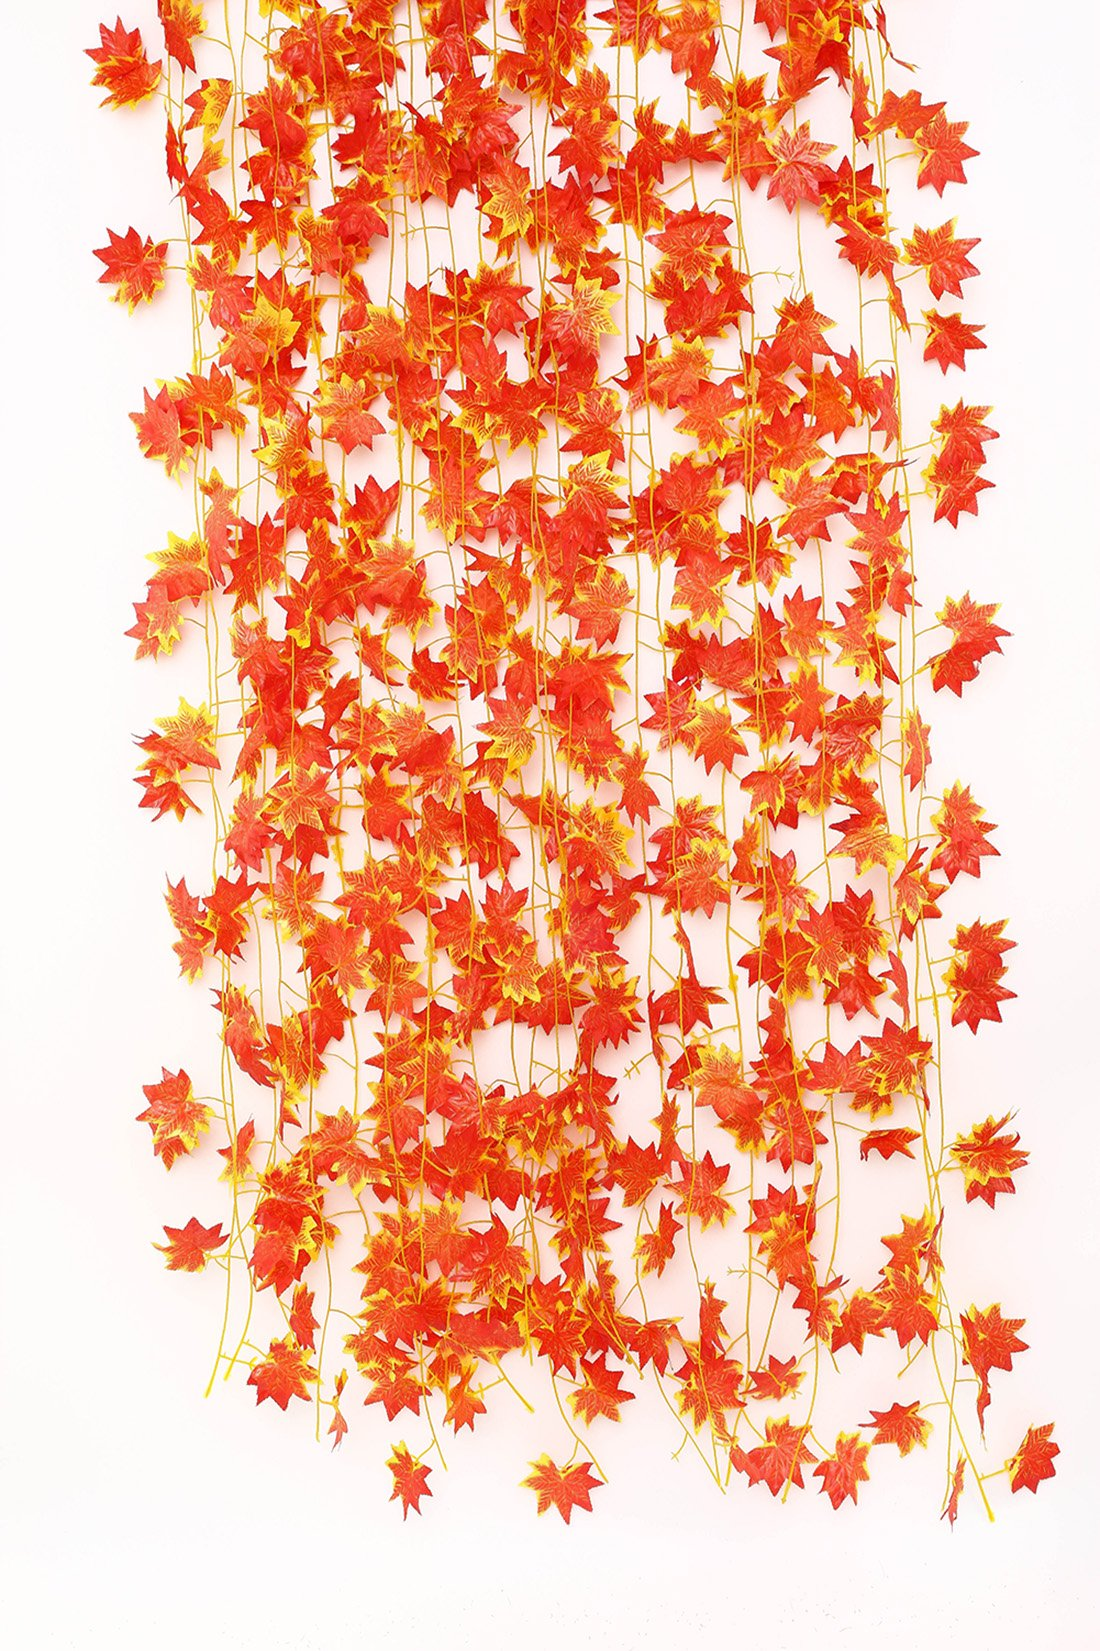 silk flower arrangements charmly 12pcs maple leaf vines autumn artificial silk garland hanging plants for home wedding wall party each 7.7 ft long